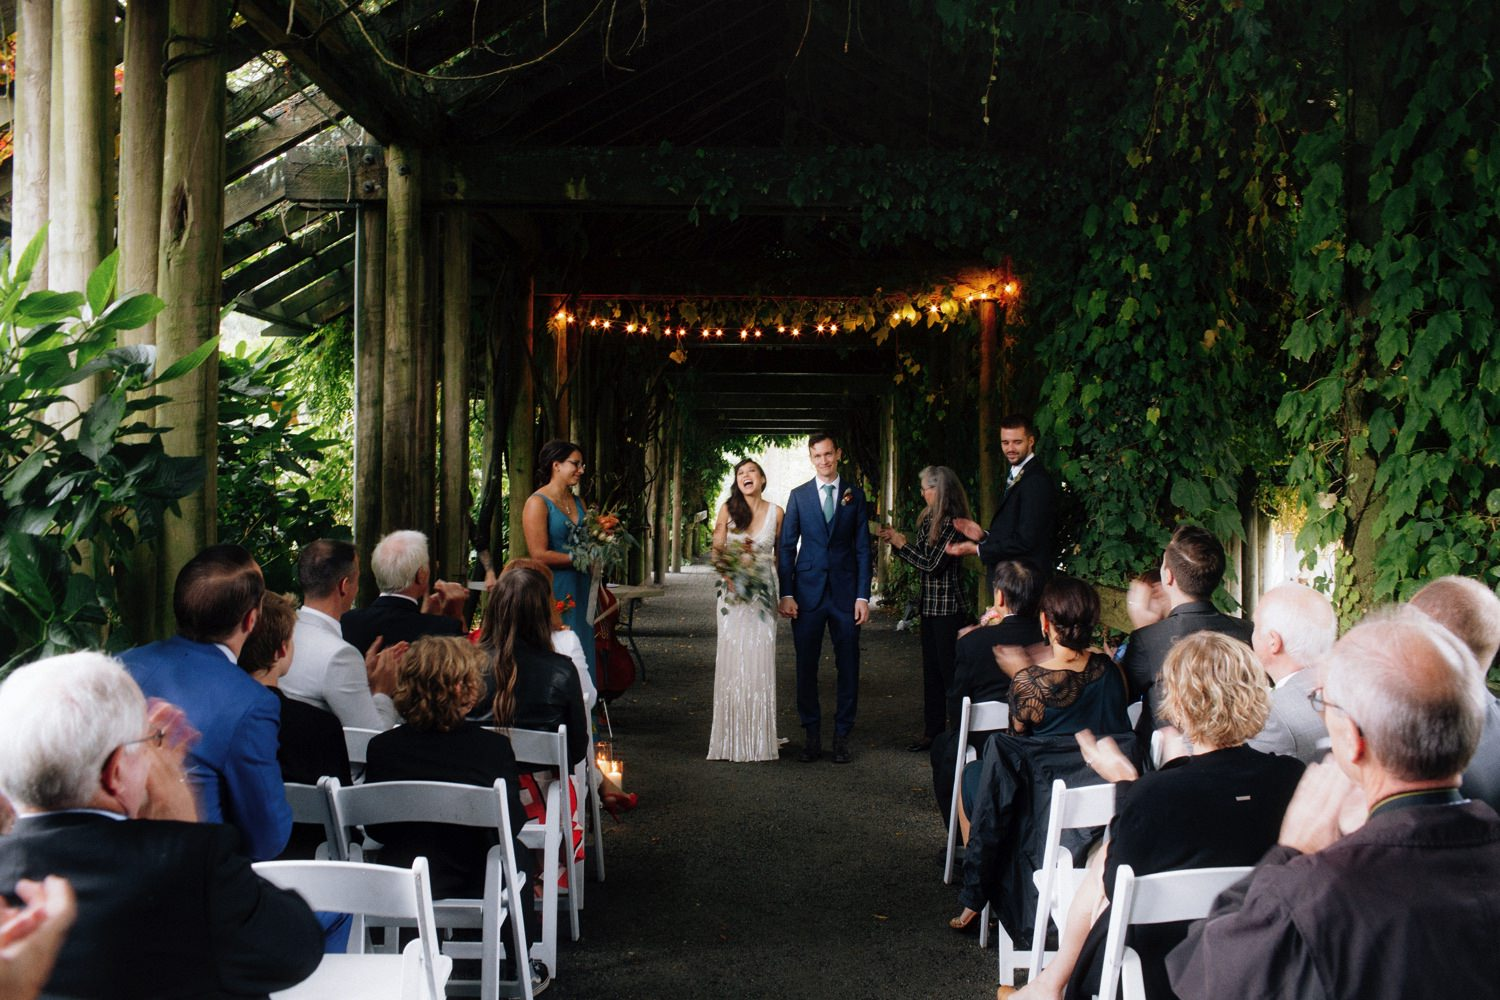 ubc botanical garden unplugged wedding ceremony without cellphones